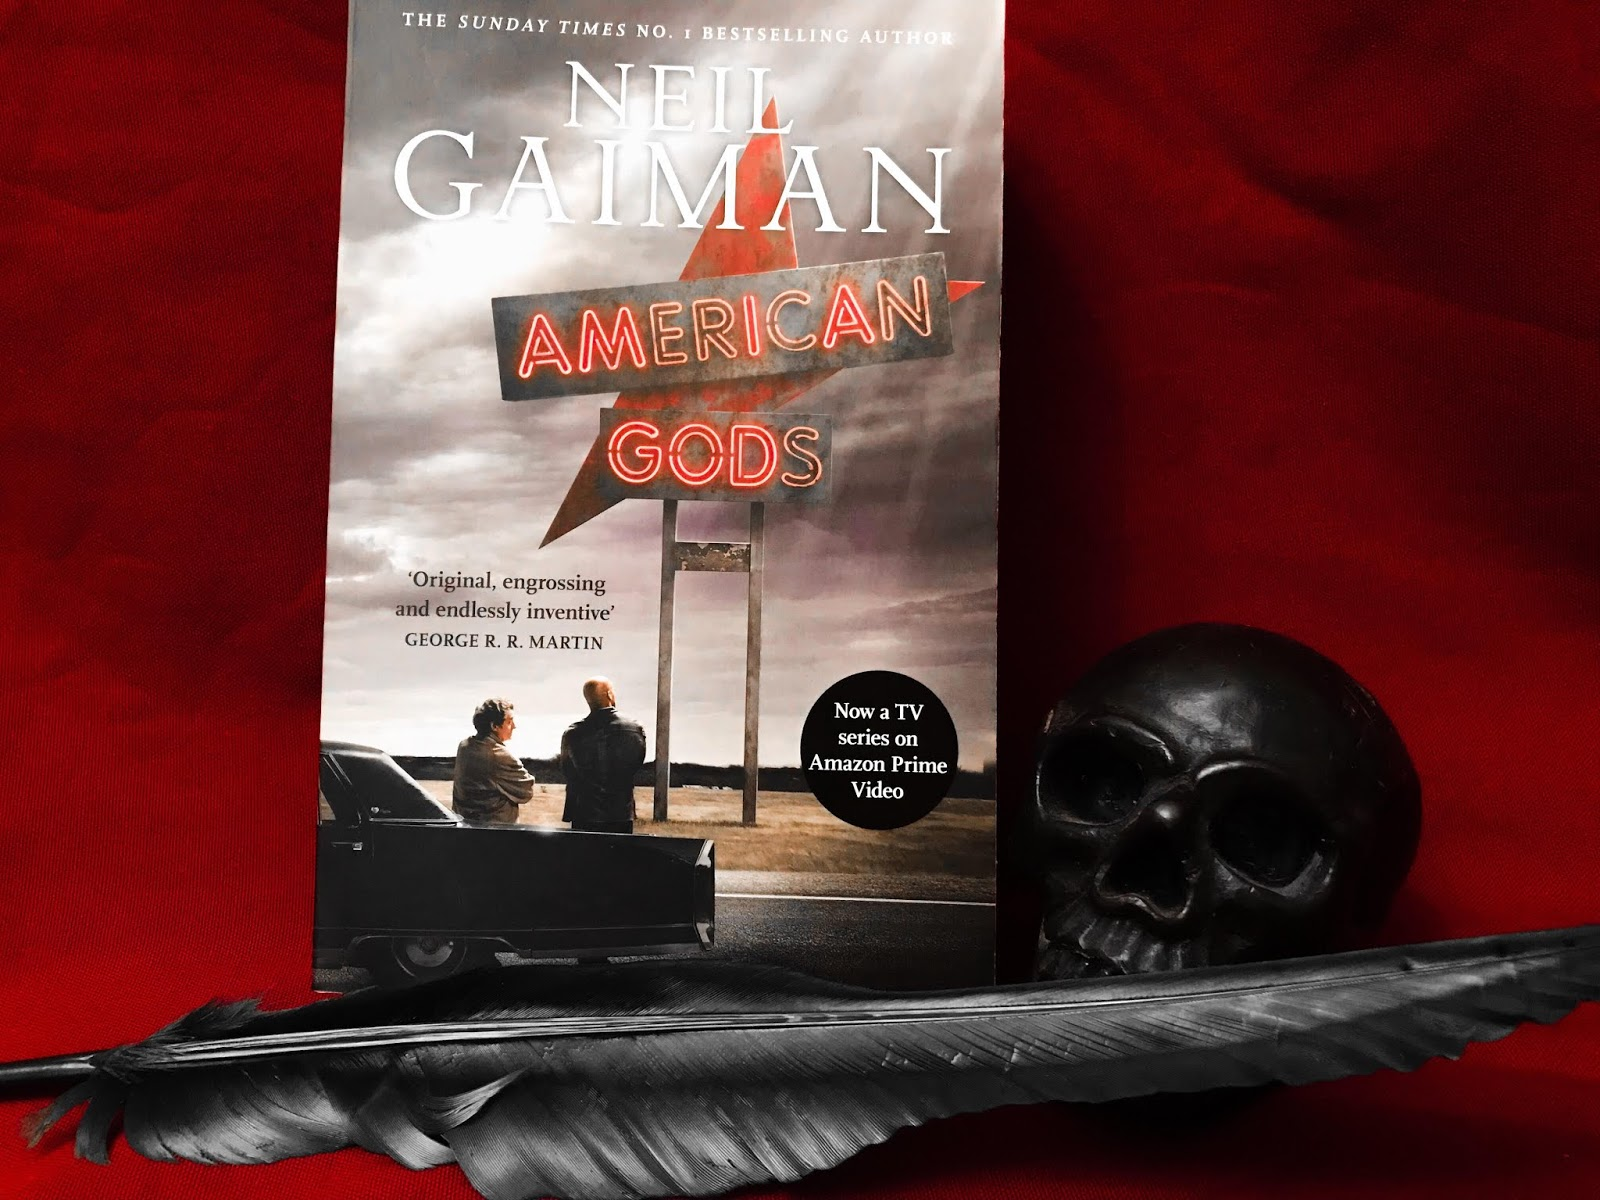 Readers Enjoy Authors' Dreams: American Gods by Neil Gaiman